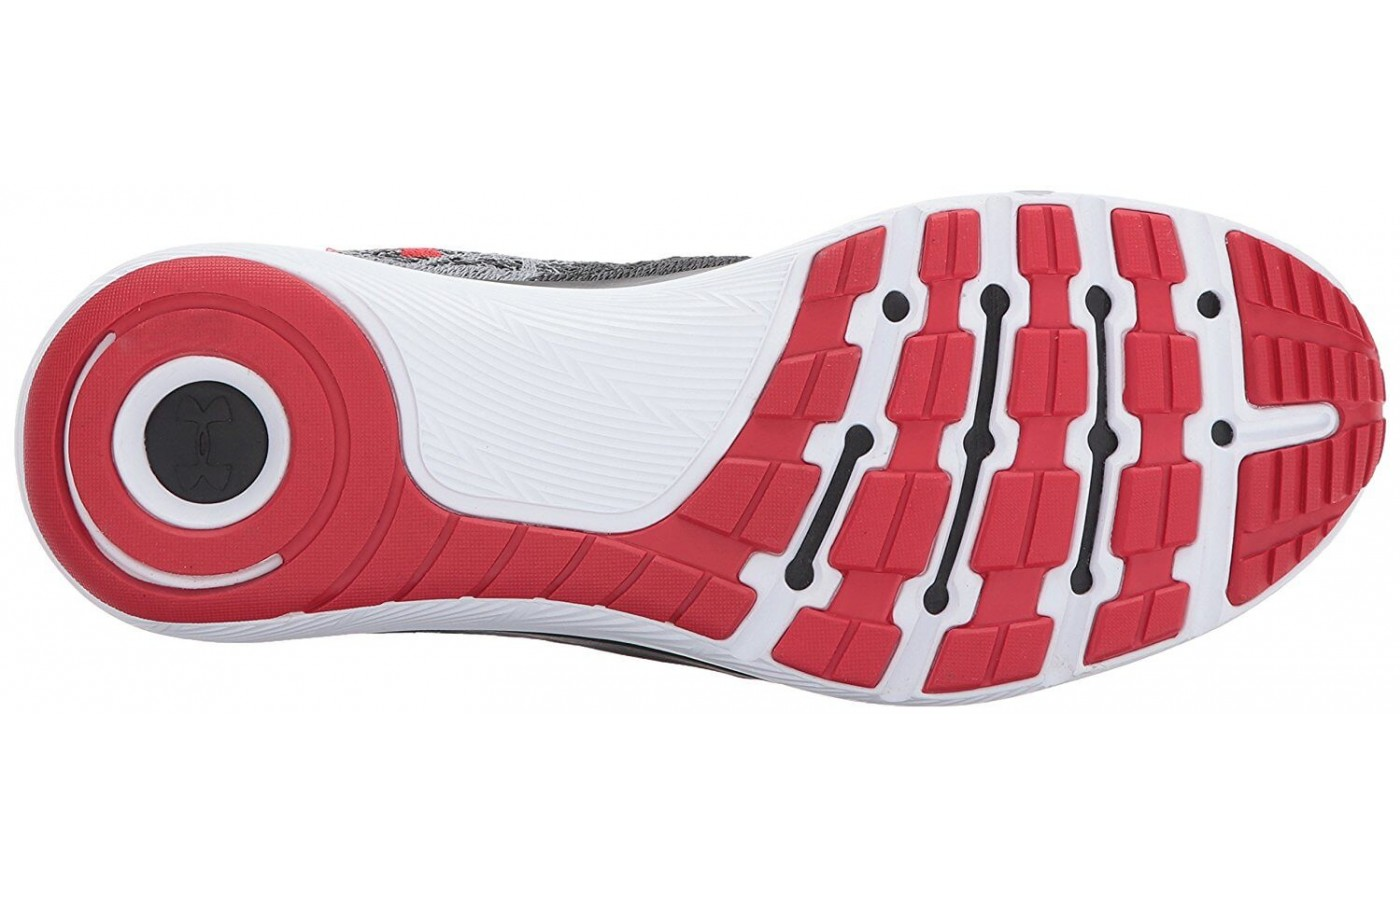 The unique designed of the outsole provides maximum traction.